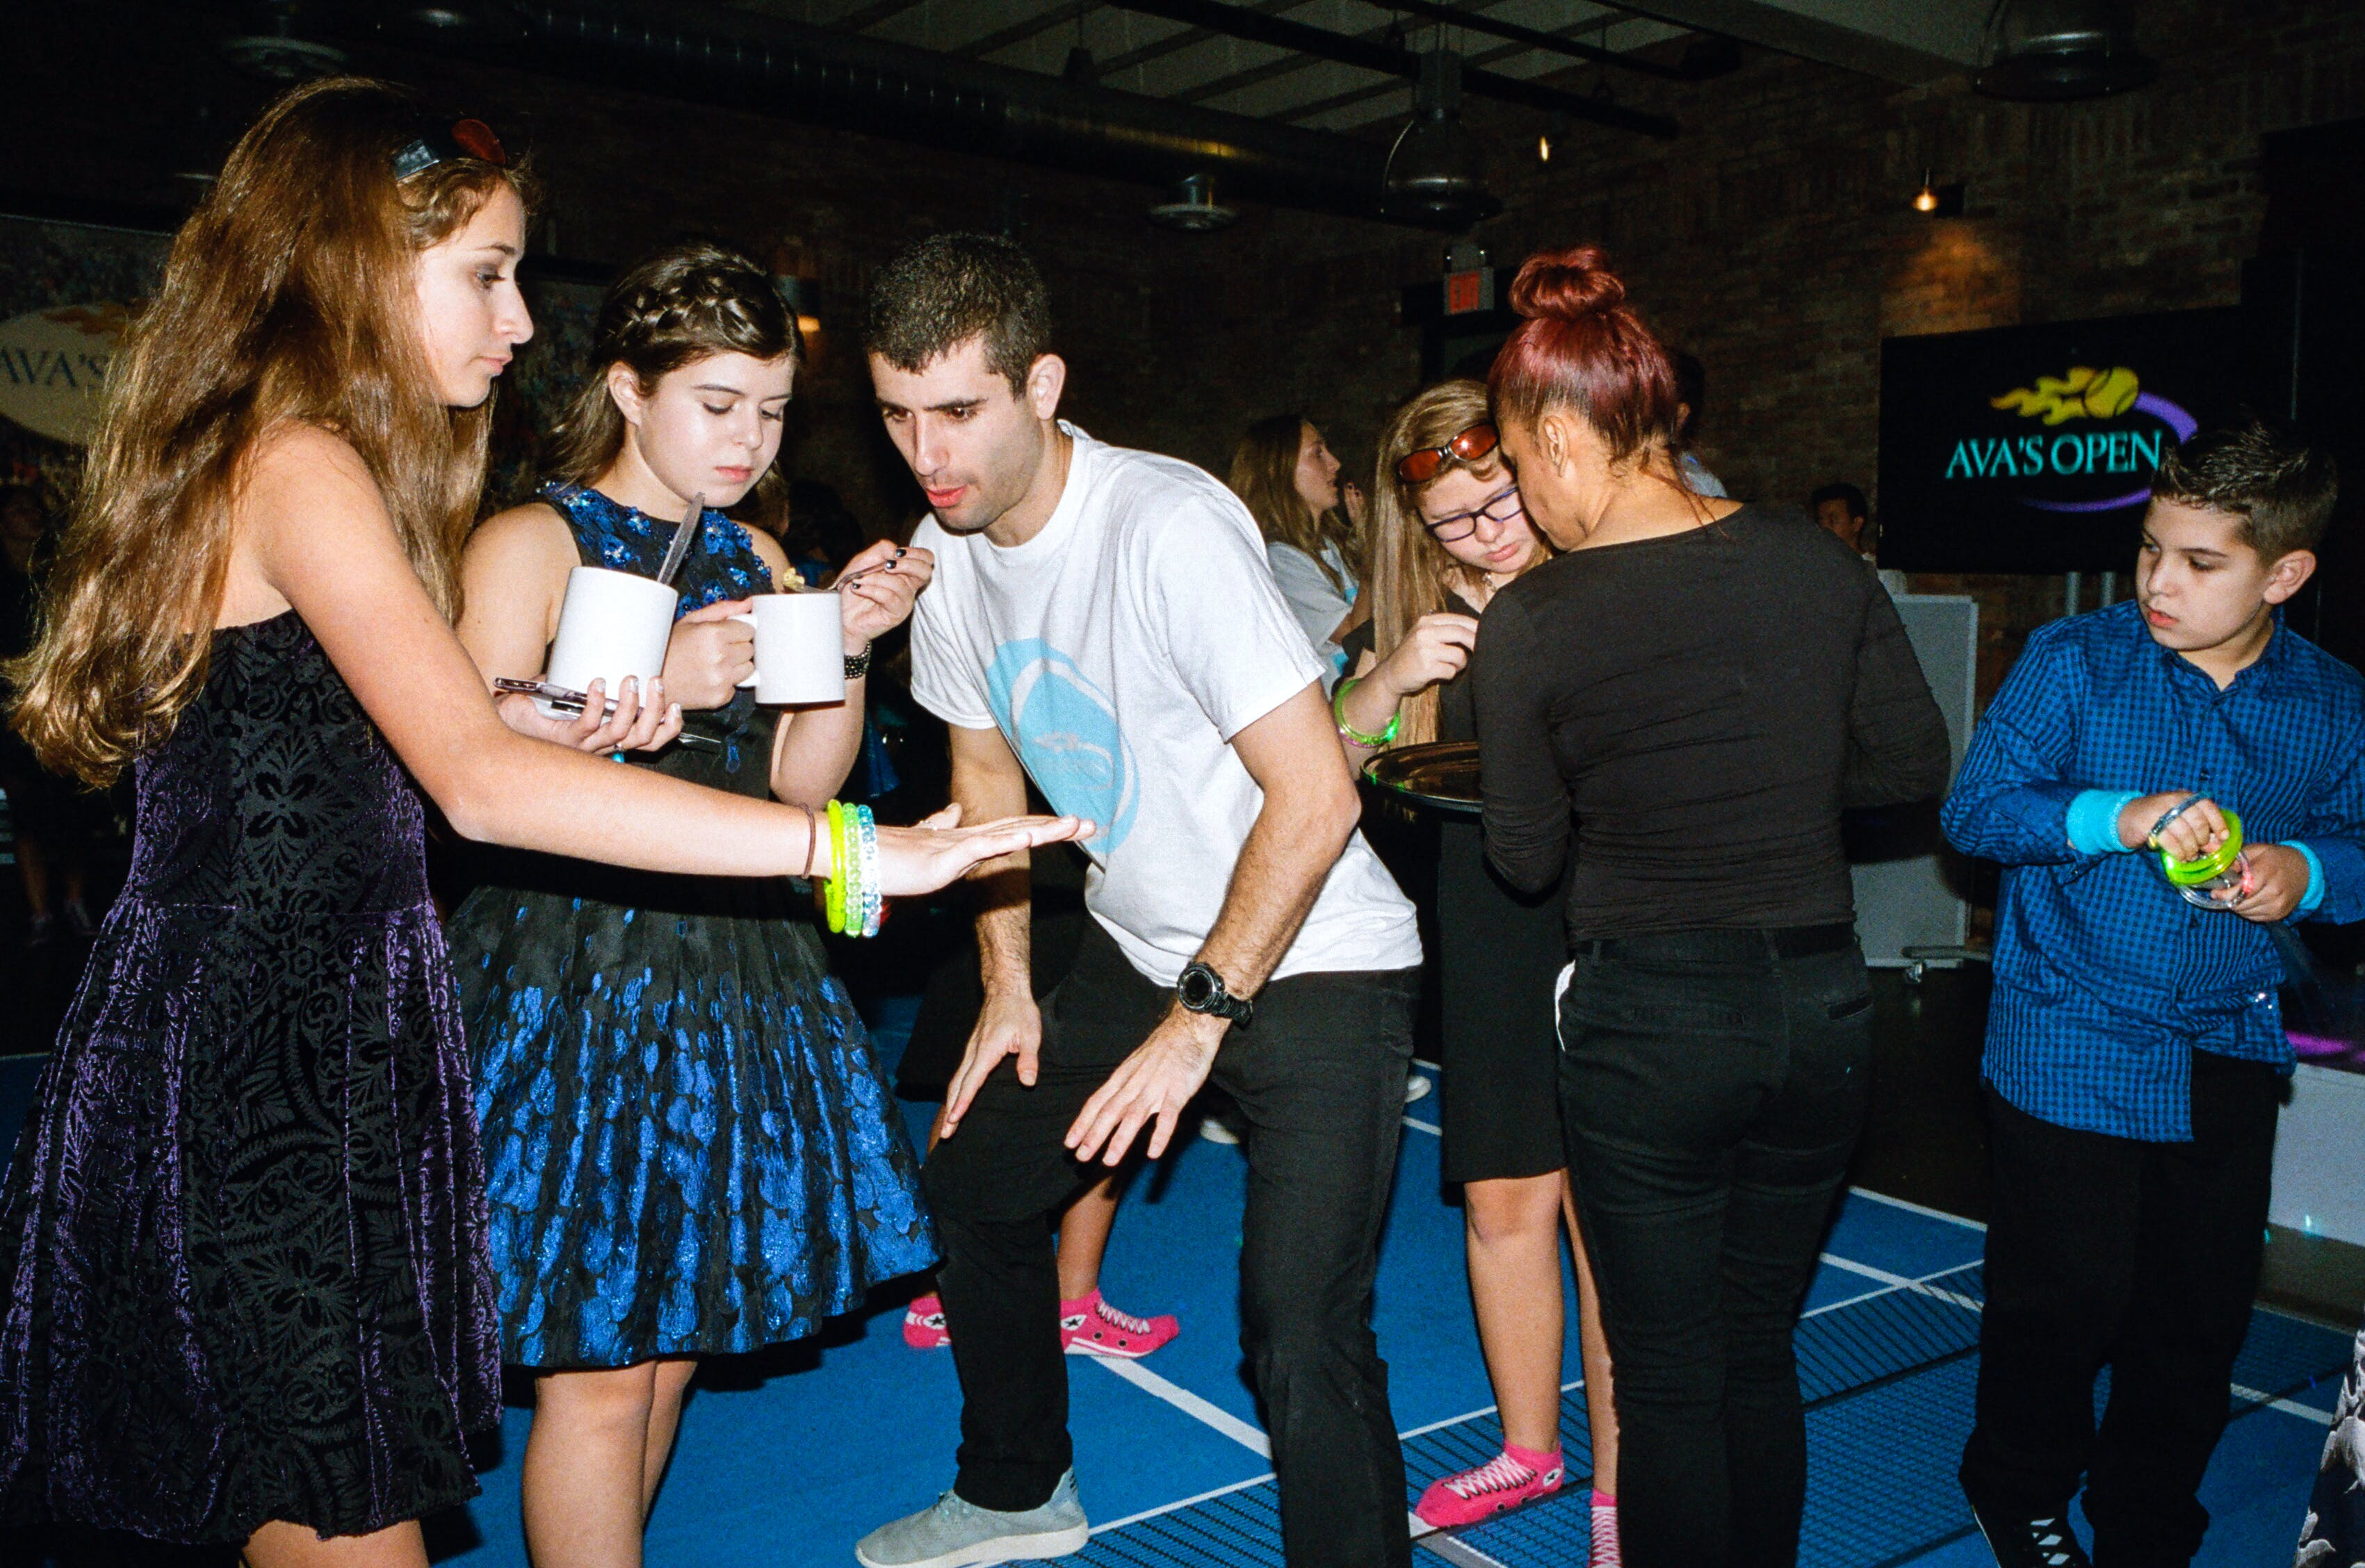 It's incredibly charming to see how the entertainers check in with and take cues from the kids on the dance floor.